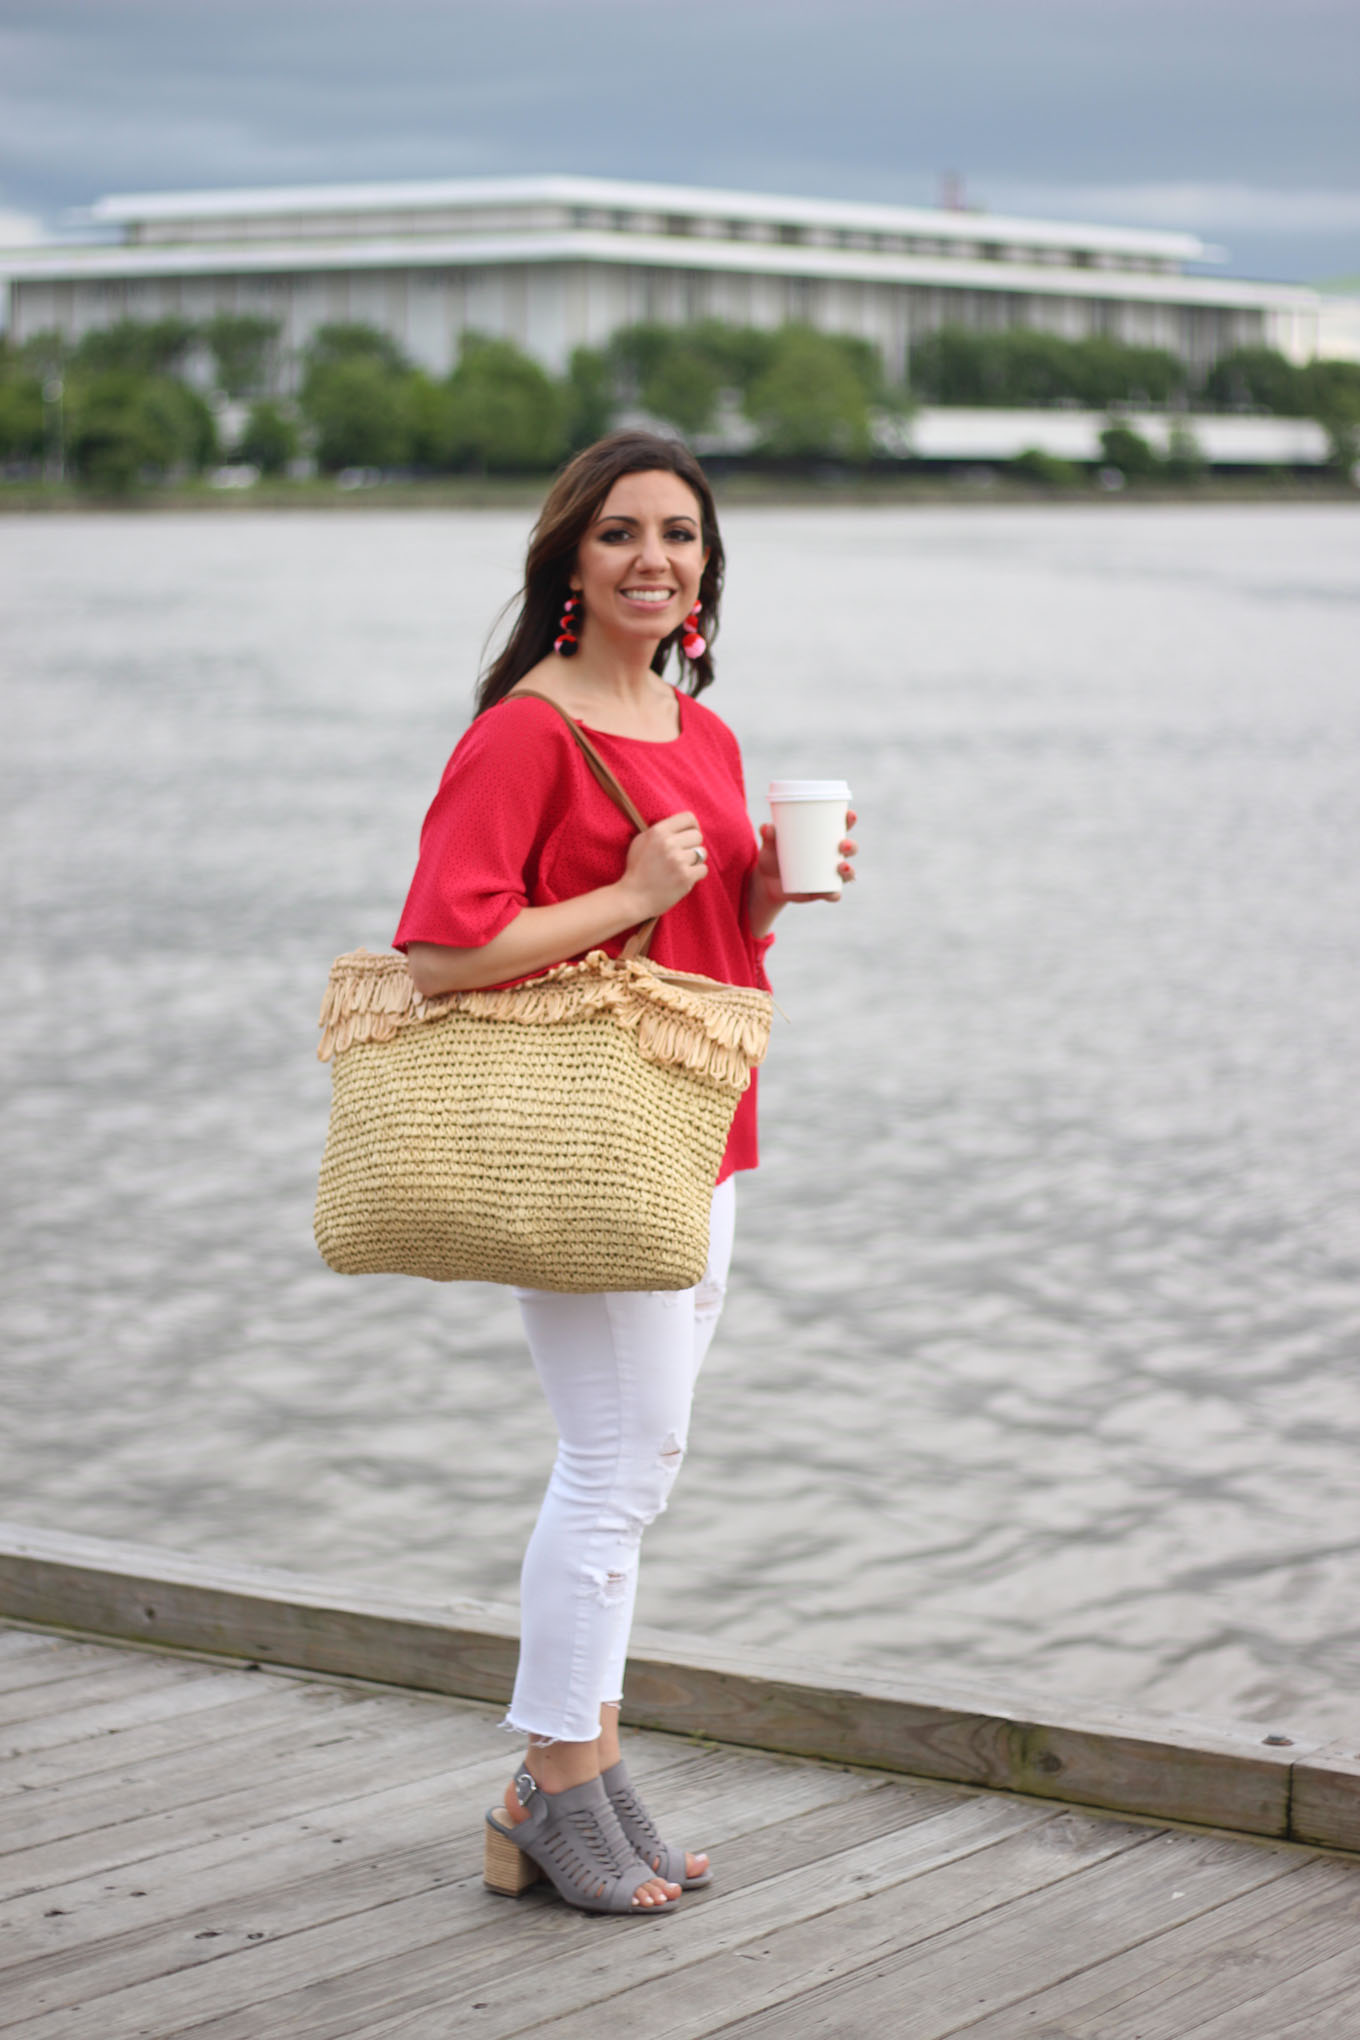 Lifestyle blogger Roxanne of Glass of Glam wearing a red Cuddy Studios top and Old Navy Denim